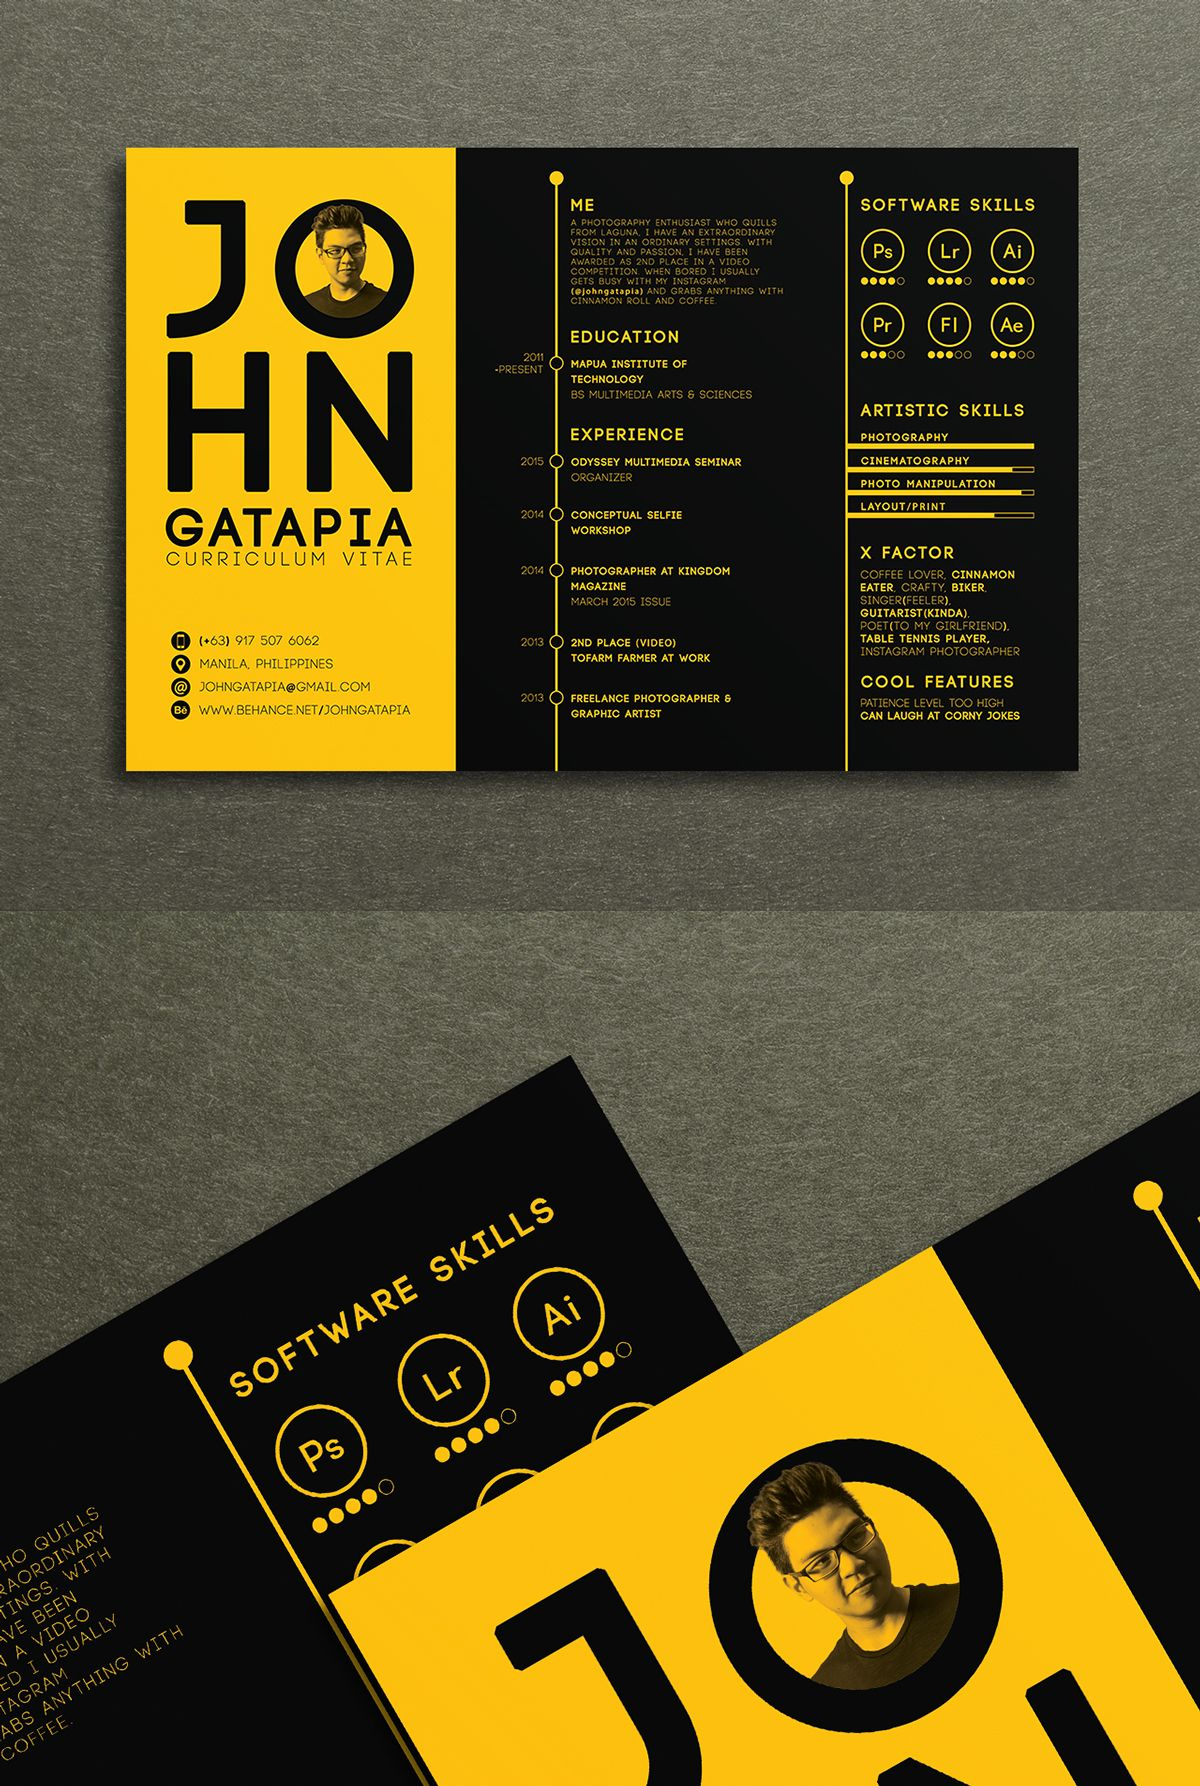 creative curriculum vitae resume on behance color crush resume